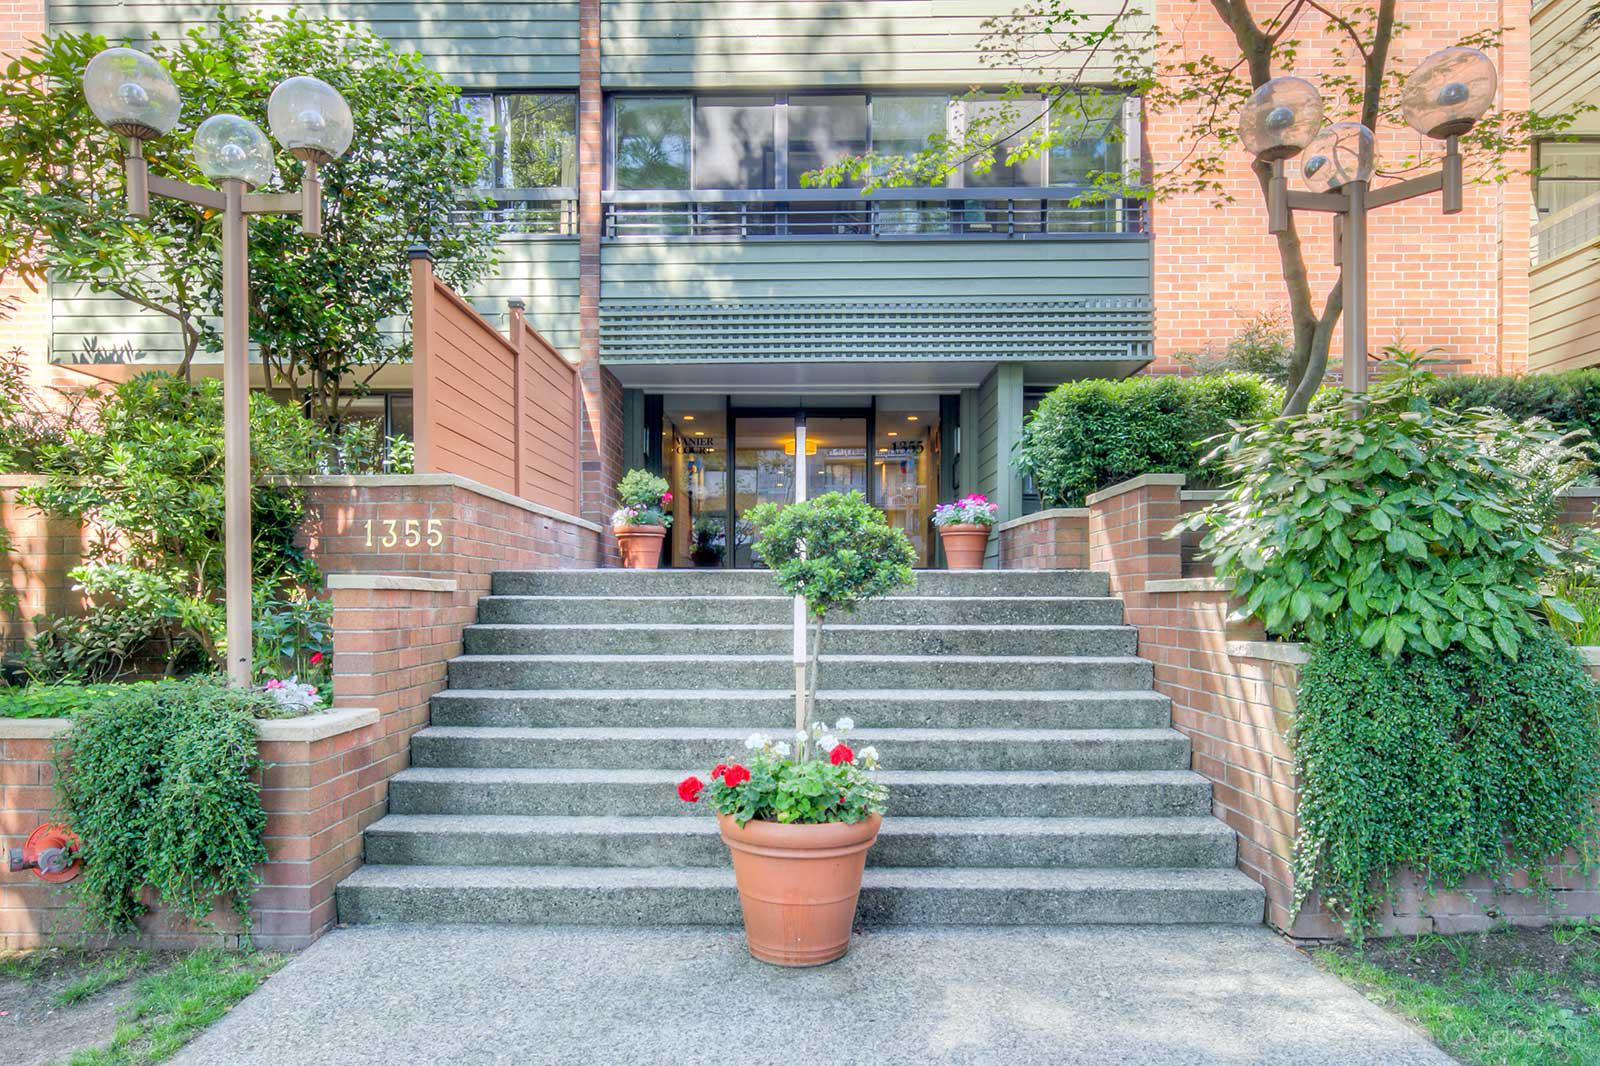 Vanier Court at 1355 Harwood St, Vancouver 0